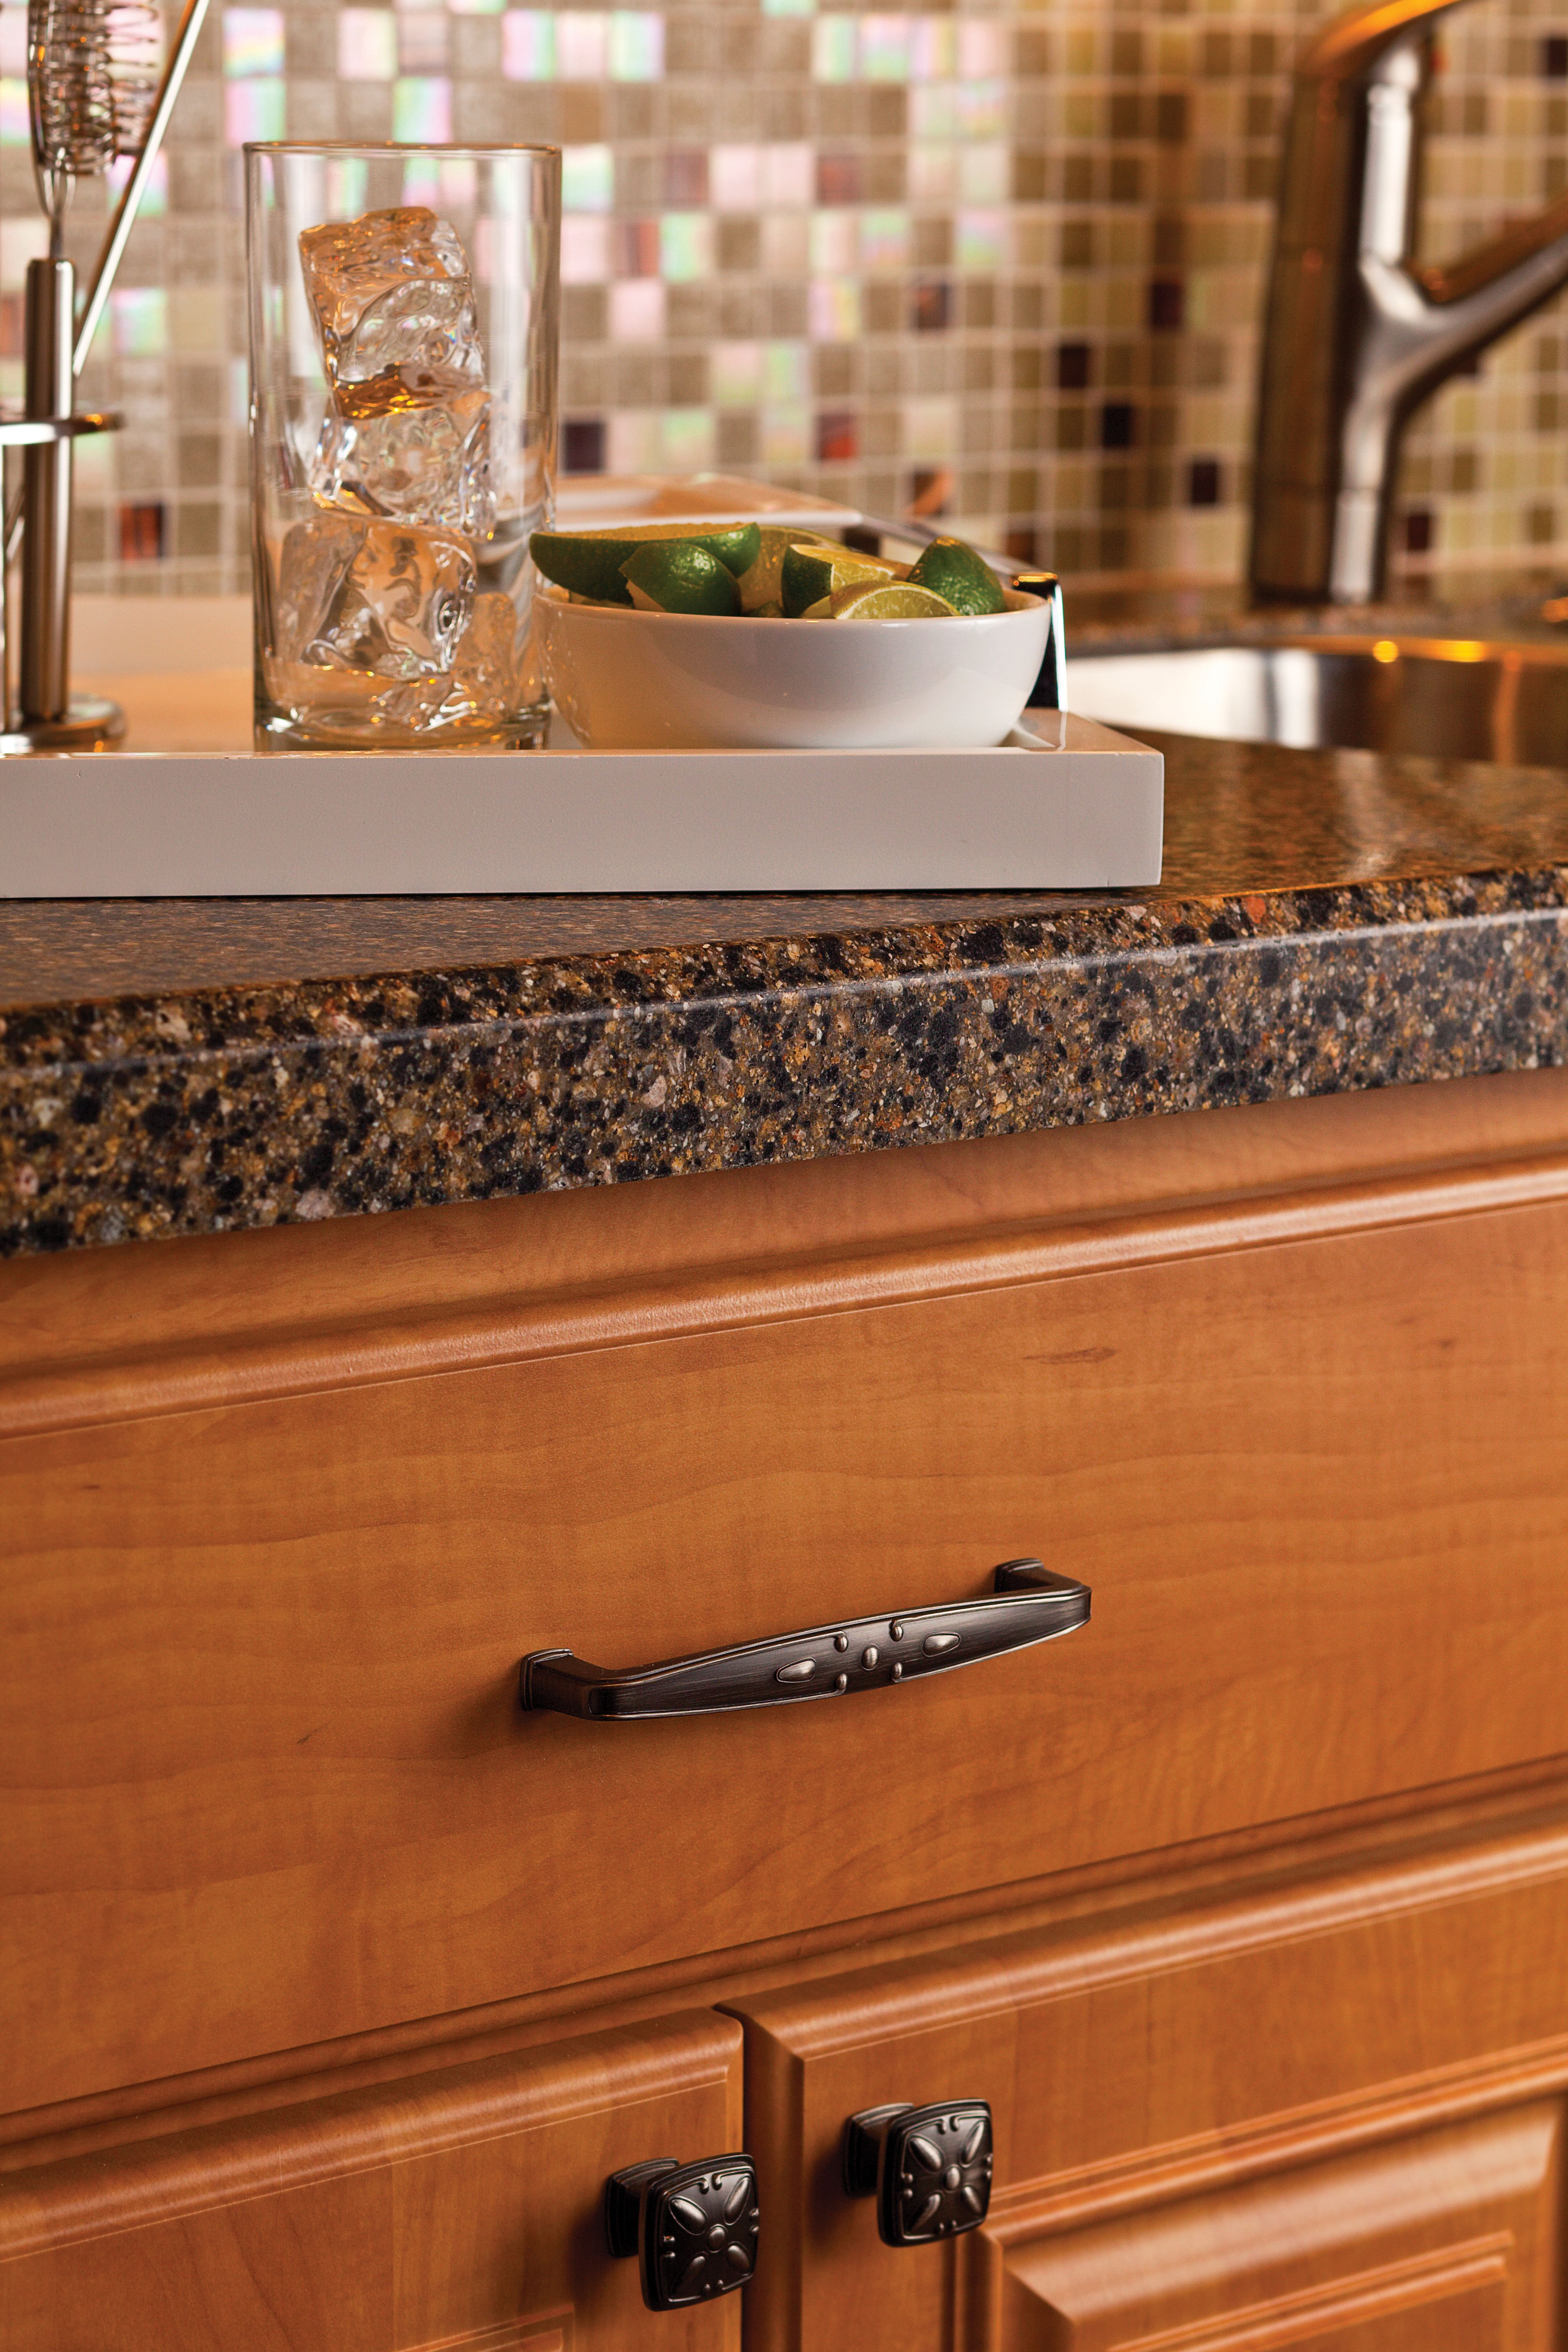 Cabinet Refacing: A Cost-Efficient Way To Upgrade Your